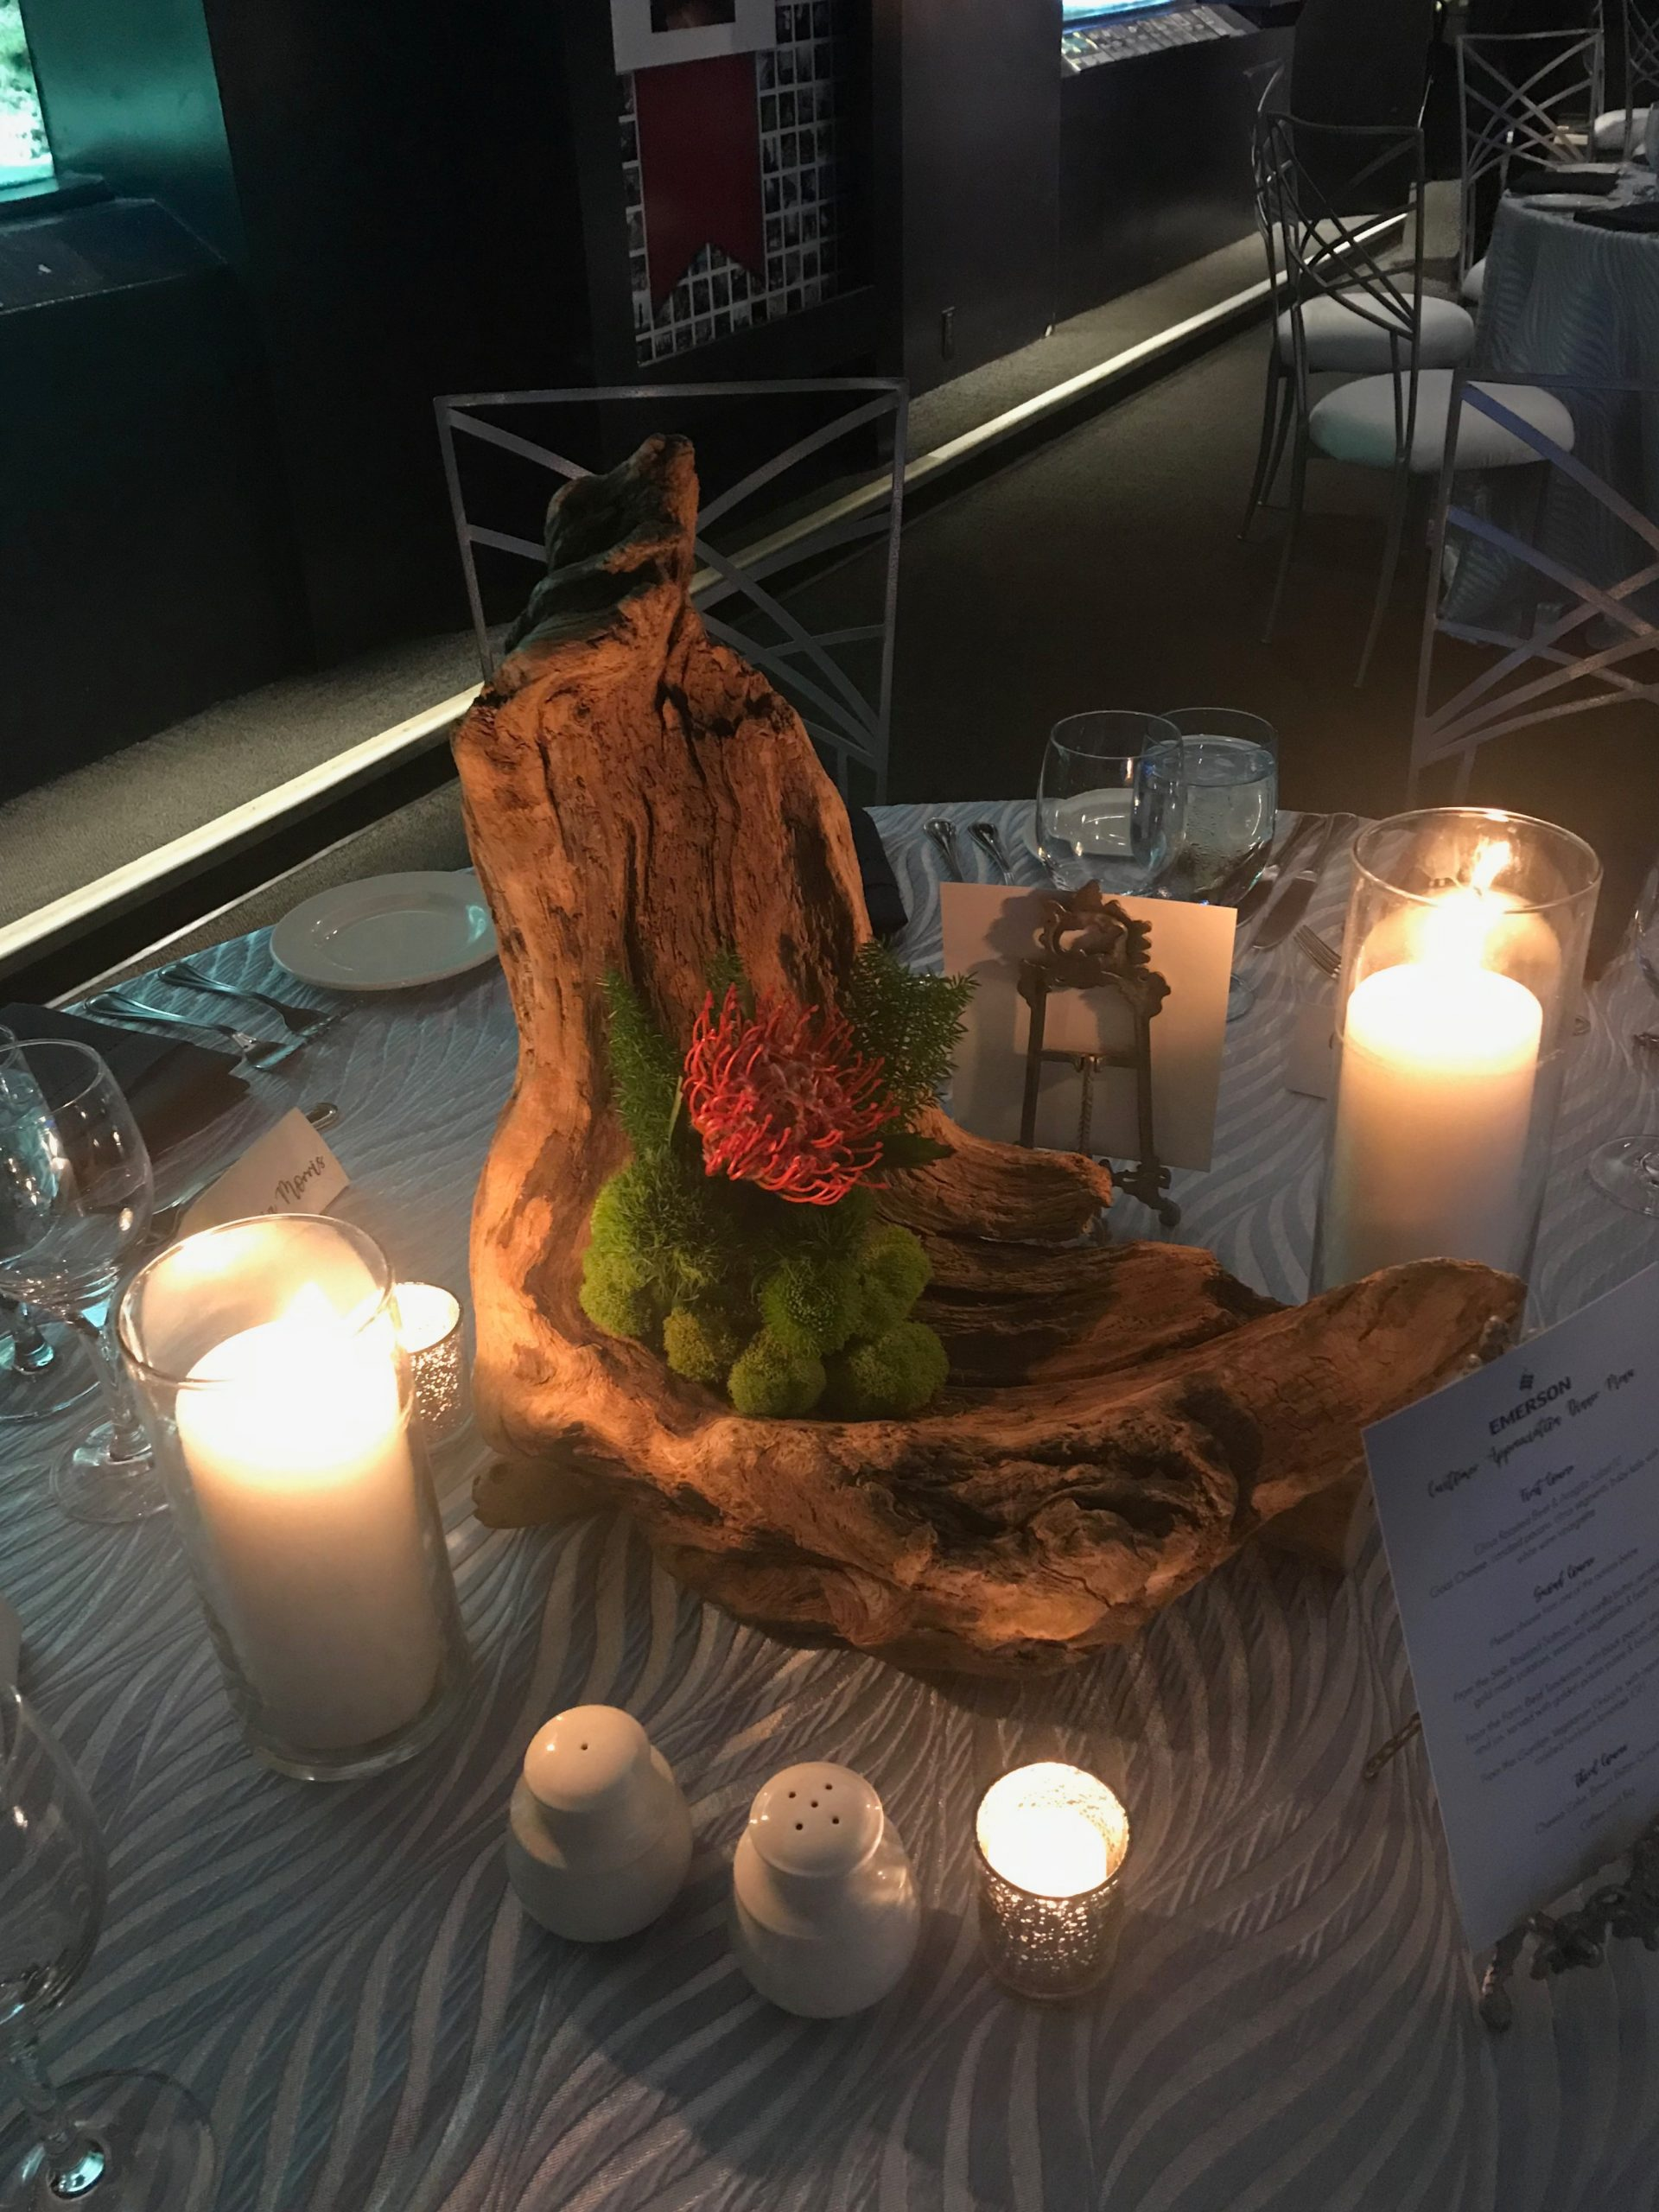 Driftwood centrepiece with bud holders for individual flower stems and preserved moss accent